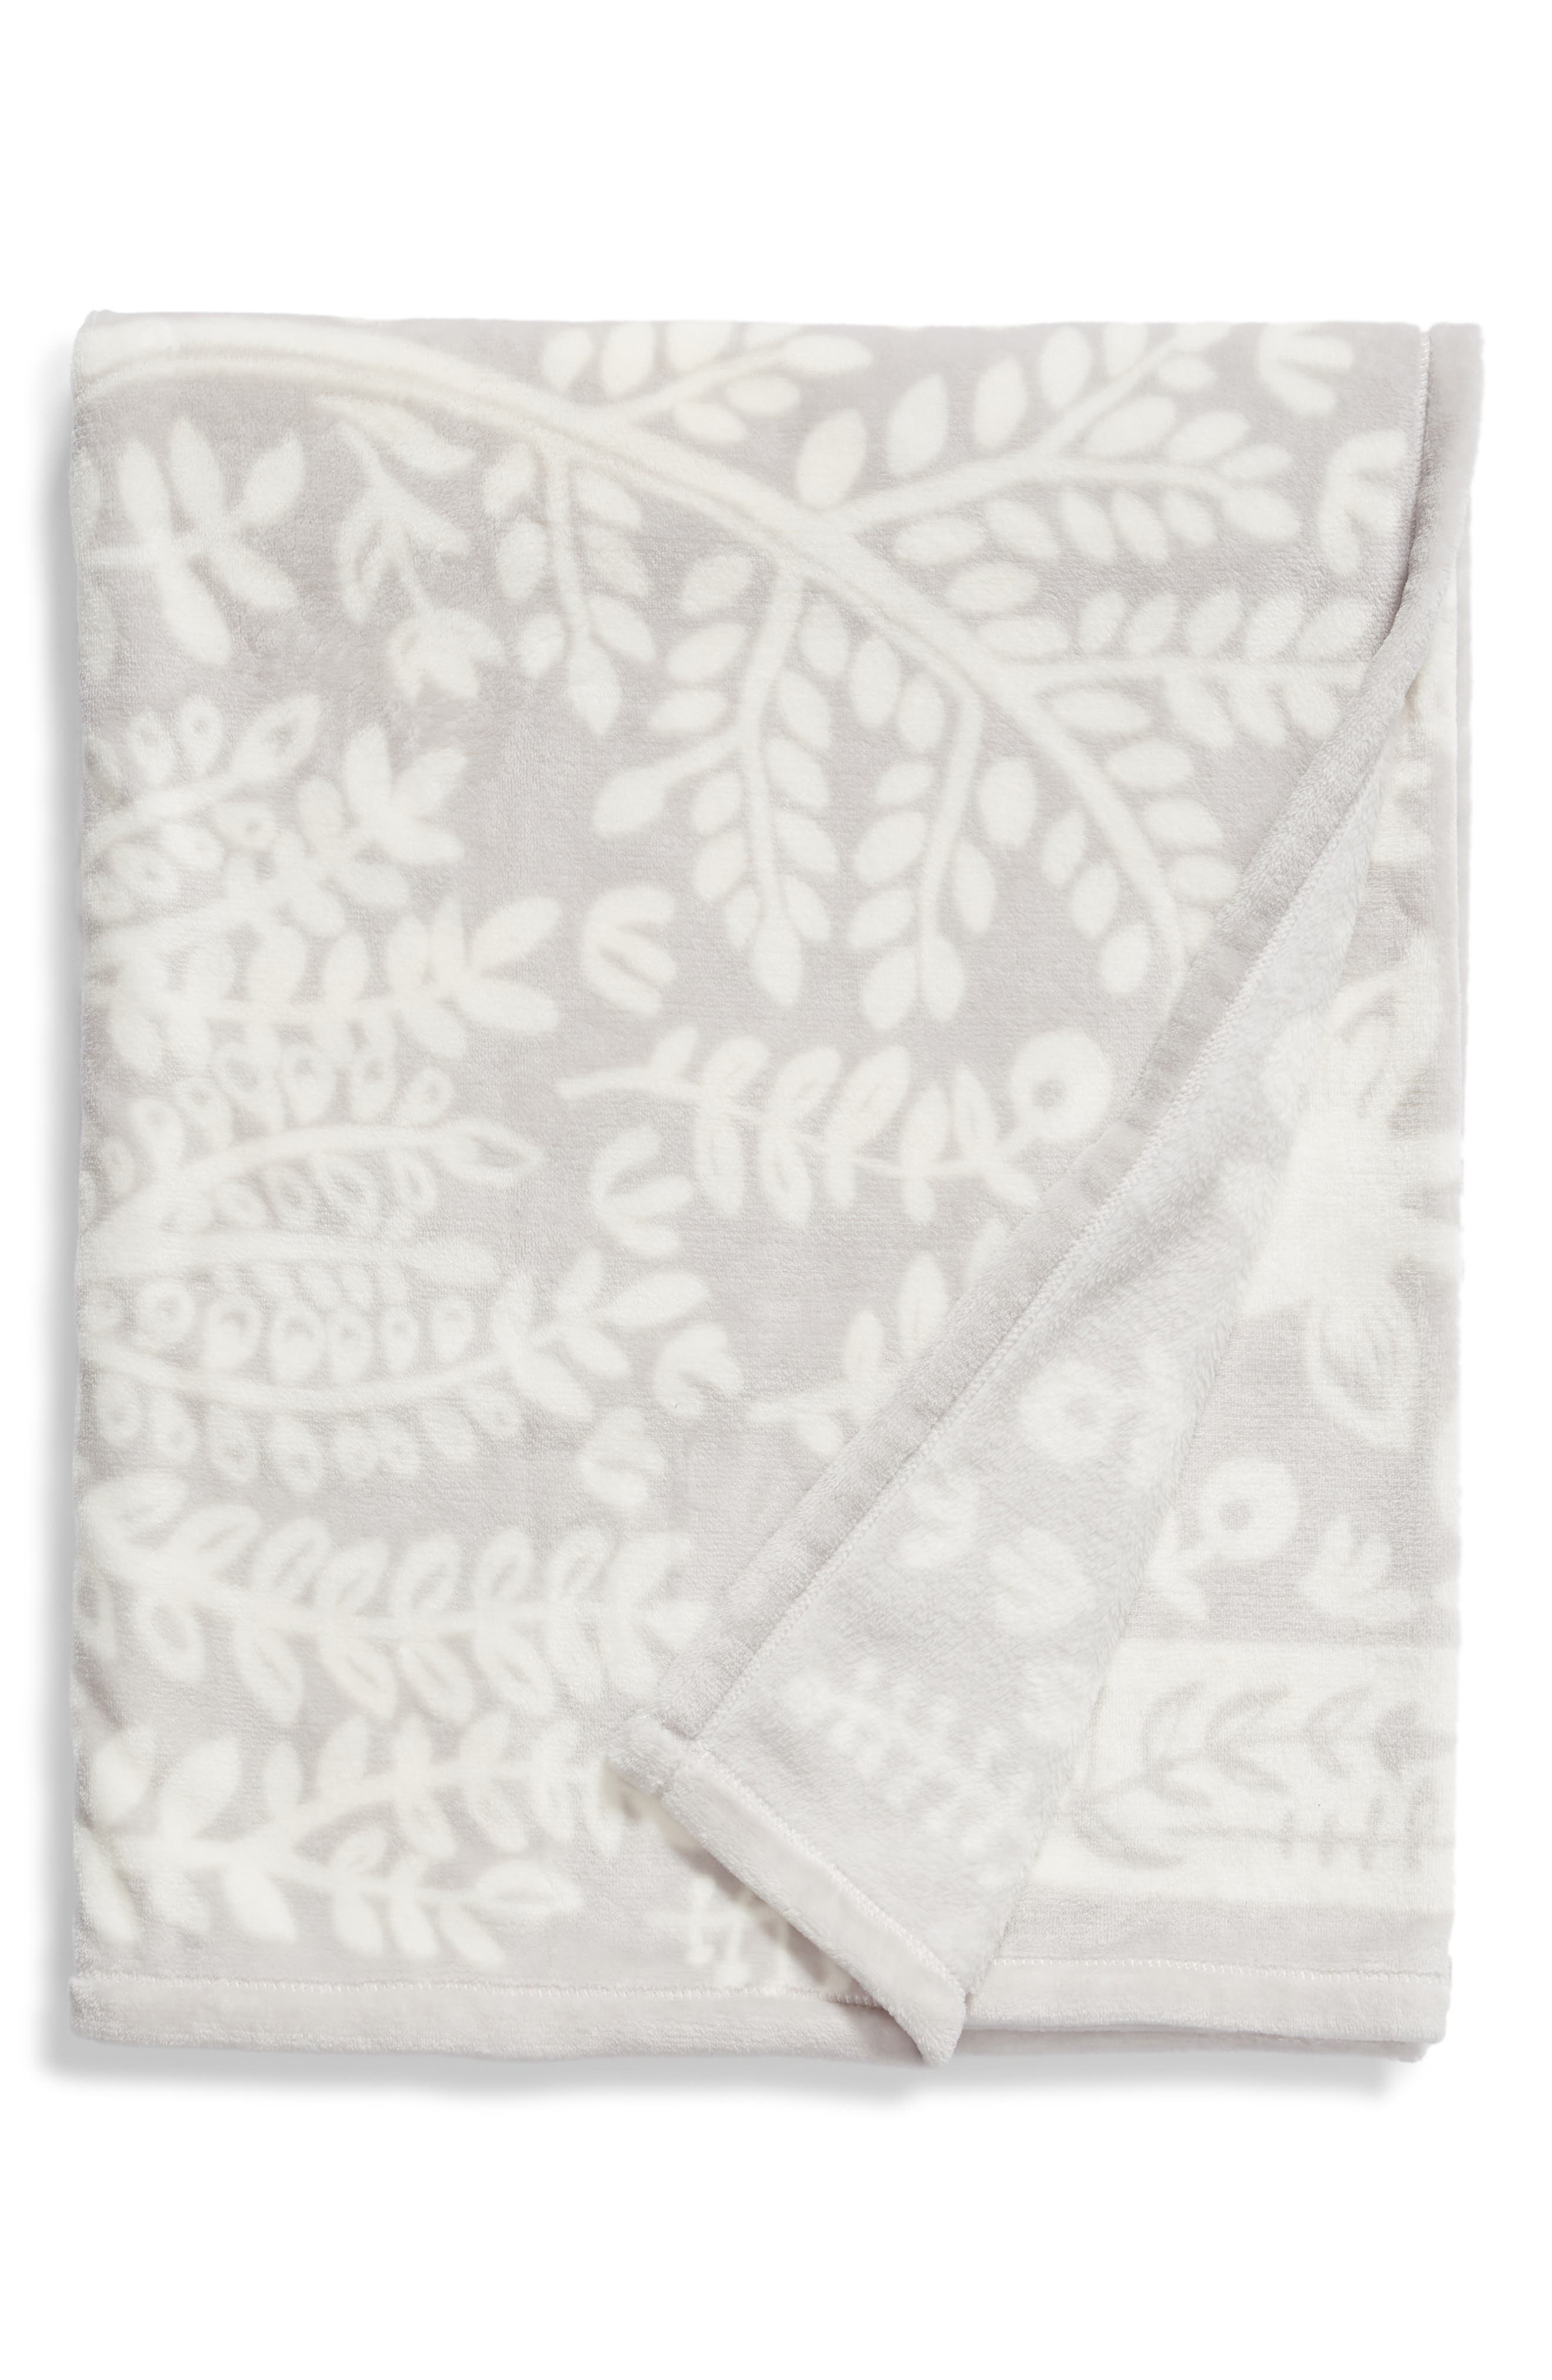 NORDSTROM AT HOME, Winter Woods Plush Throw, Main thumbnail 1, color, 021